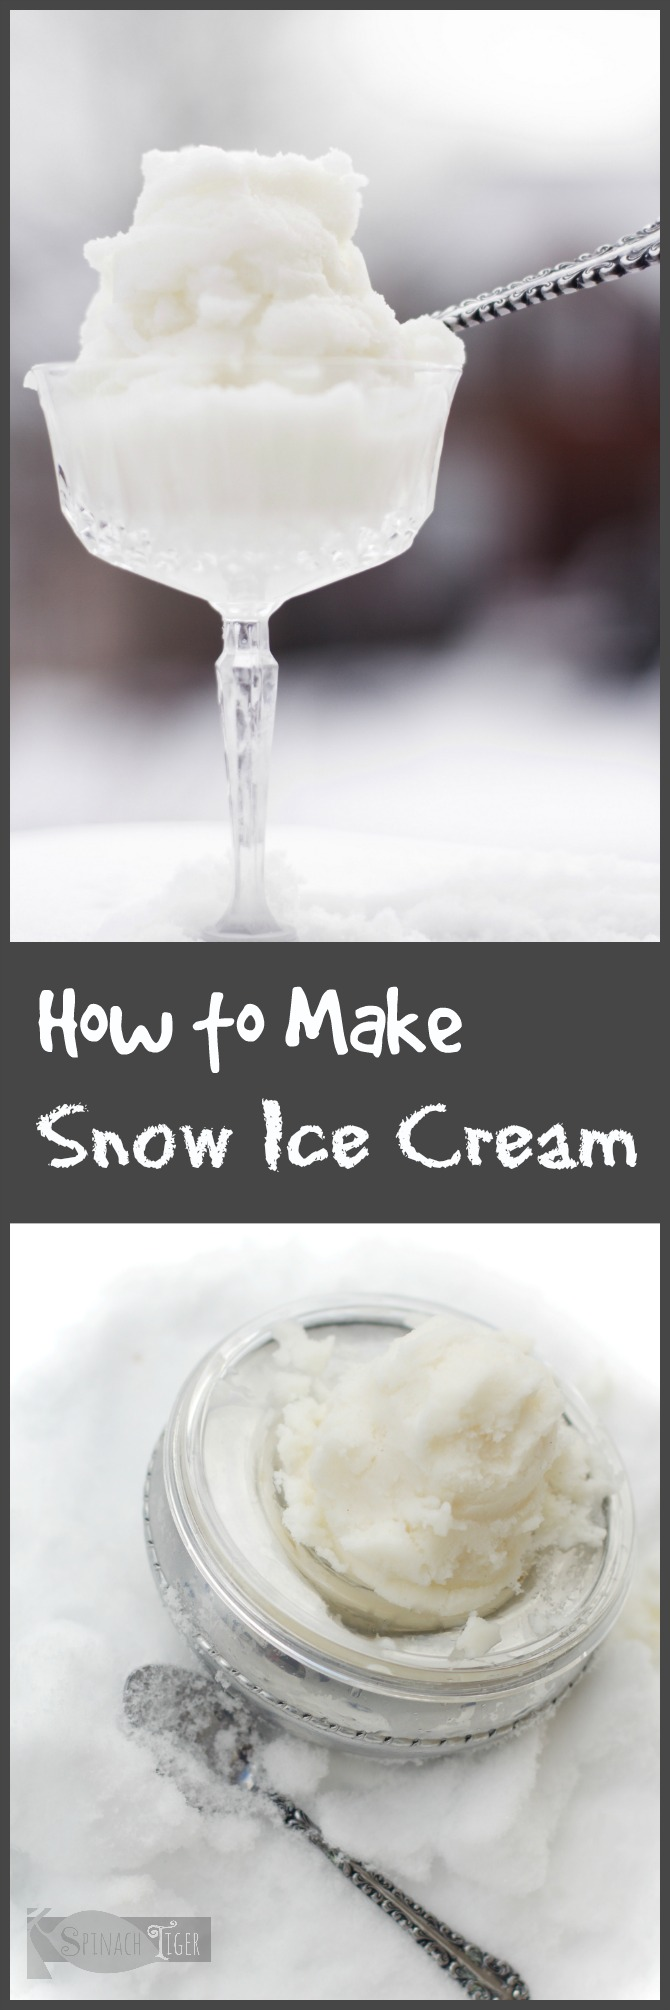 Make easy snow cream with fluffy snow, cold milk, vanilla, and sweetener. Recipe gives several variations. Southern Version with condensed milk. Paleo version with almond milk, keto version with Swerve. via @angelaroberts